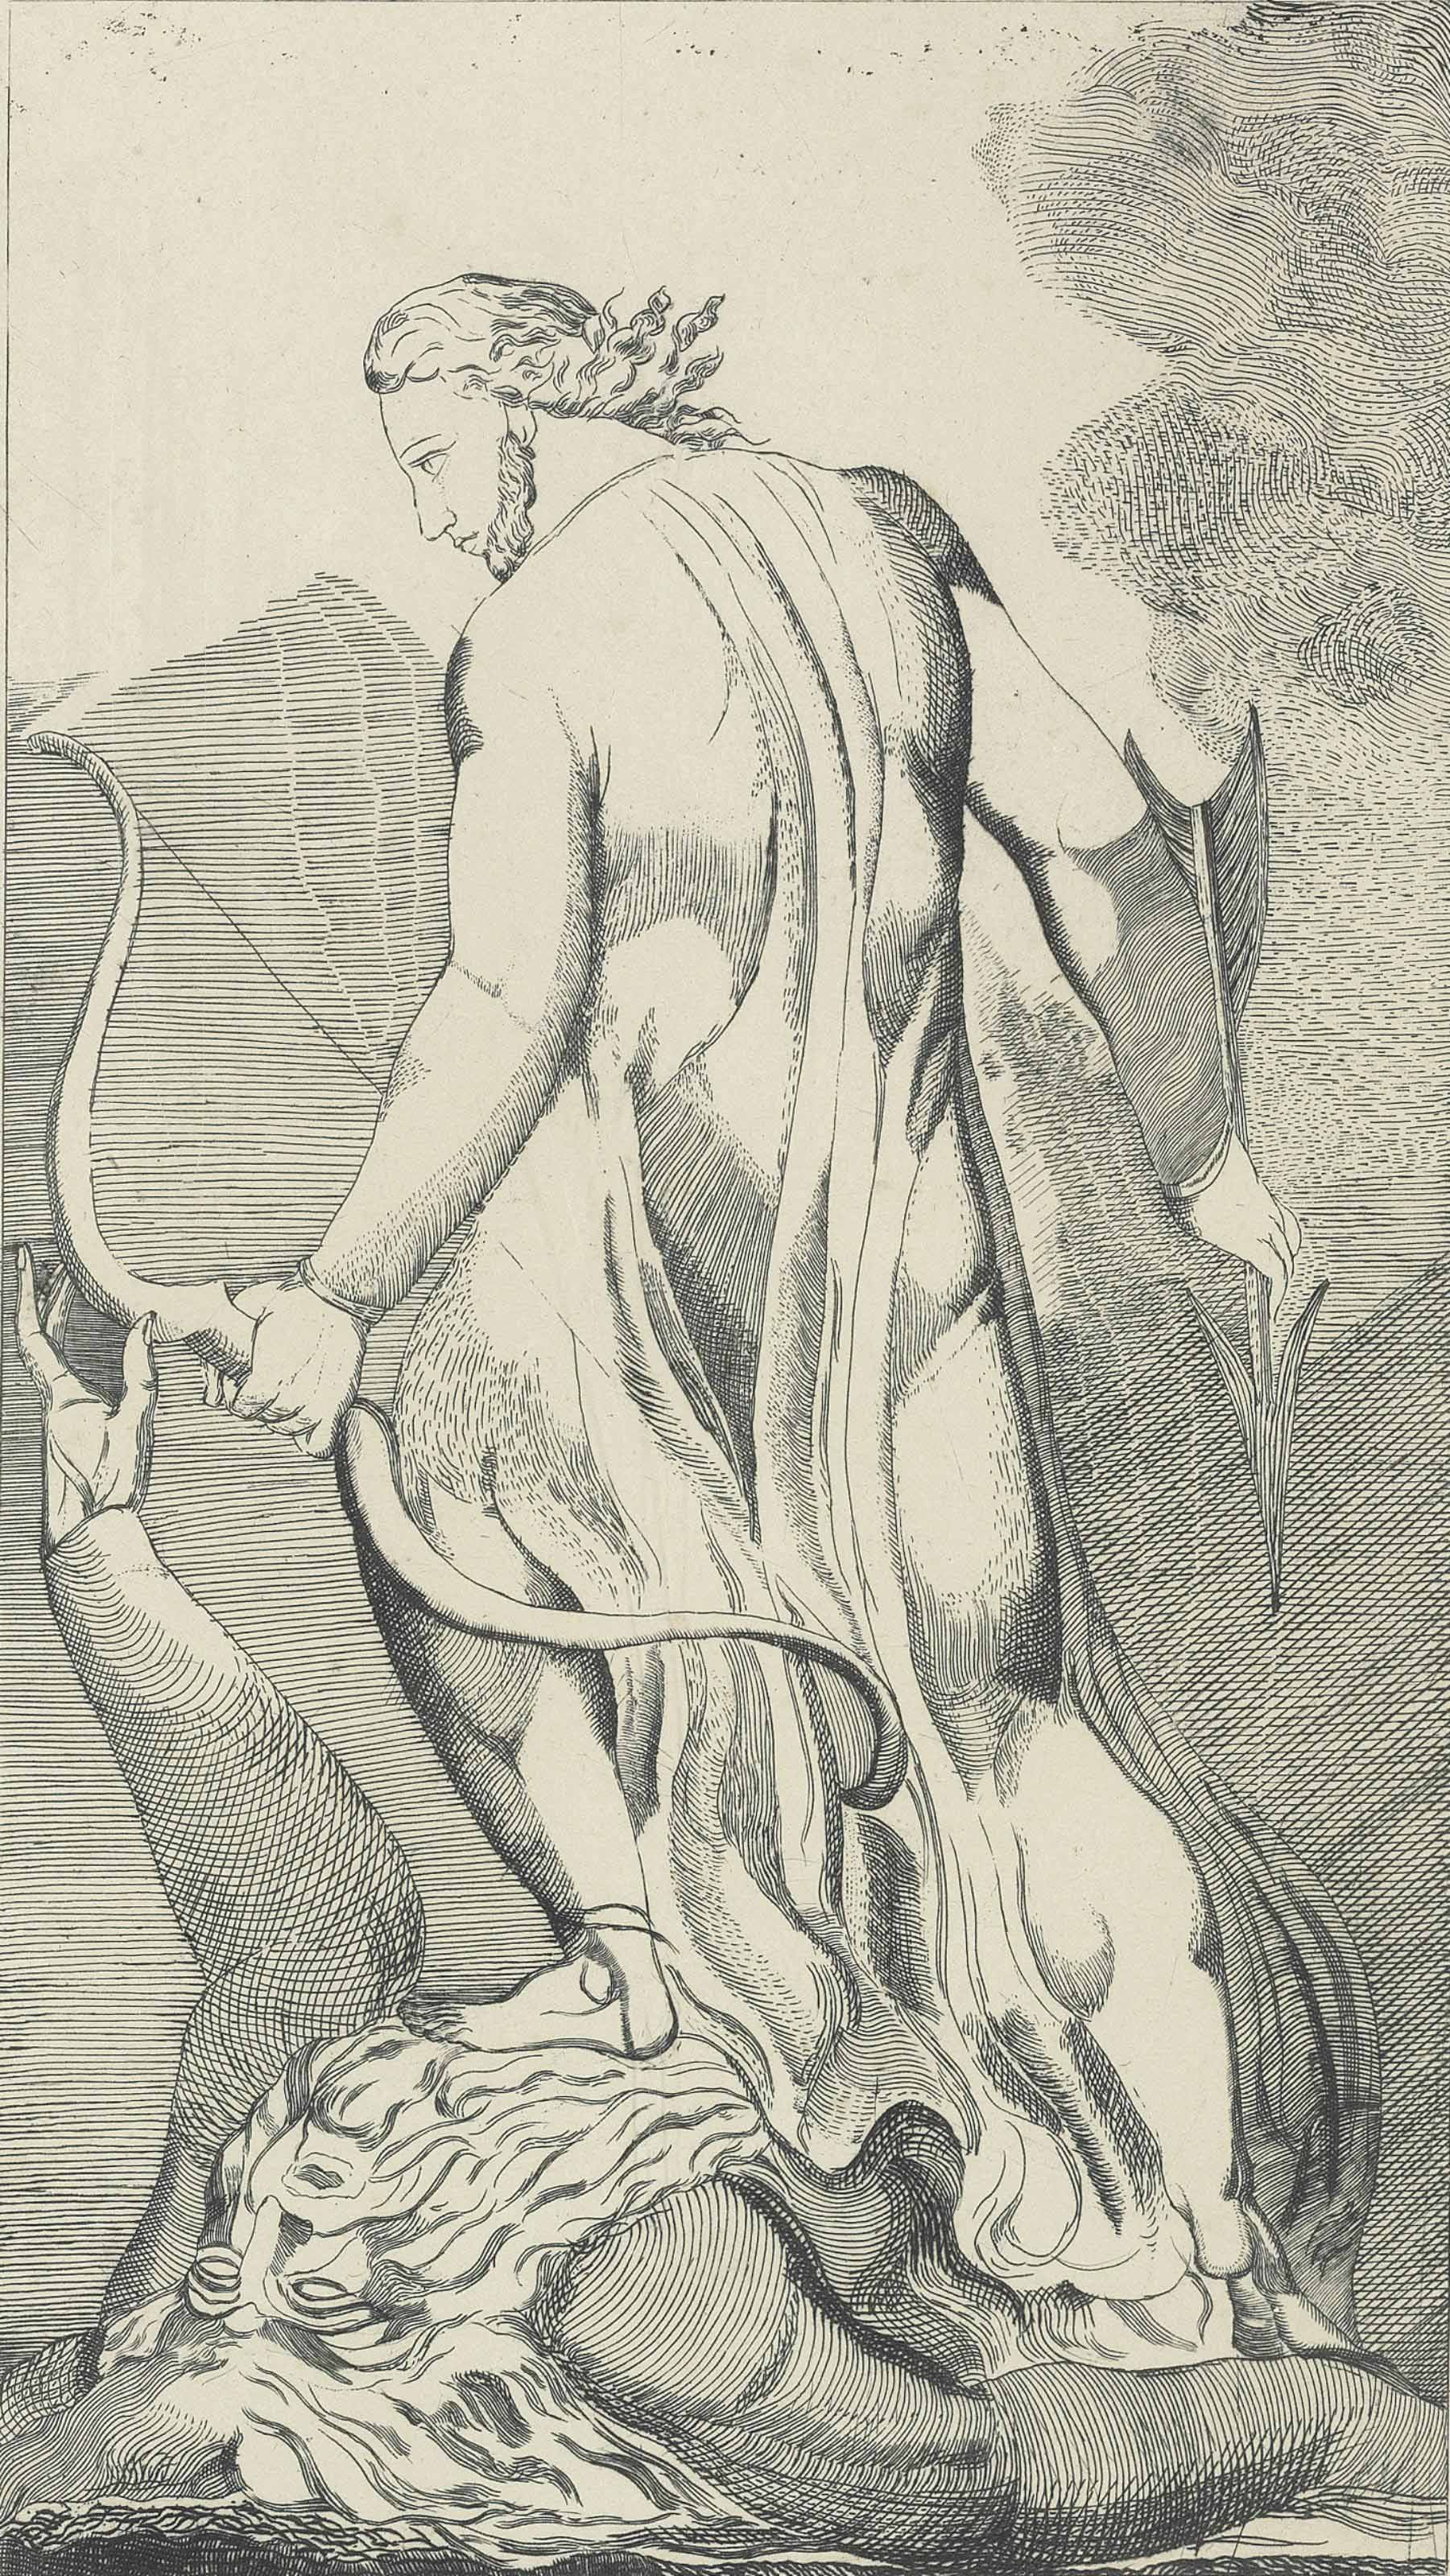 Christ trampling upon Urizen